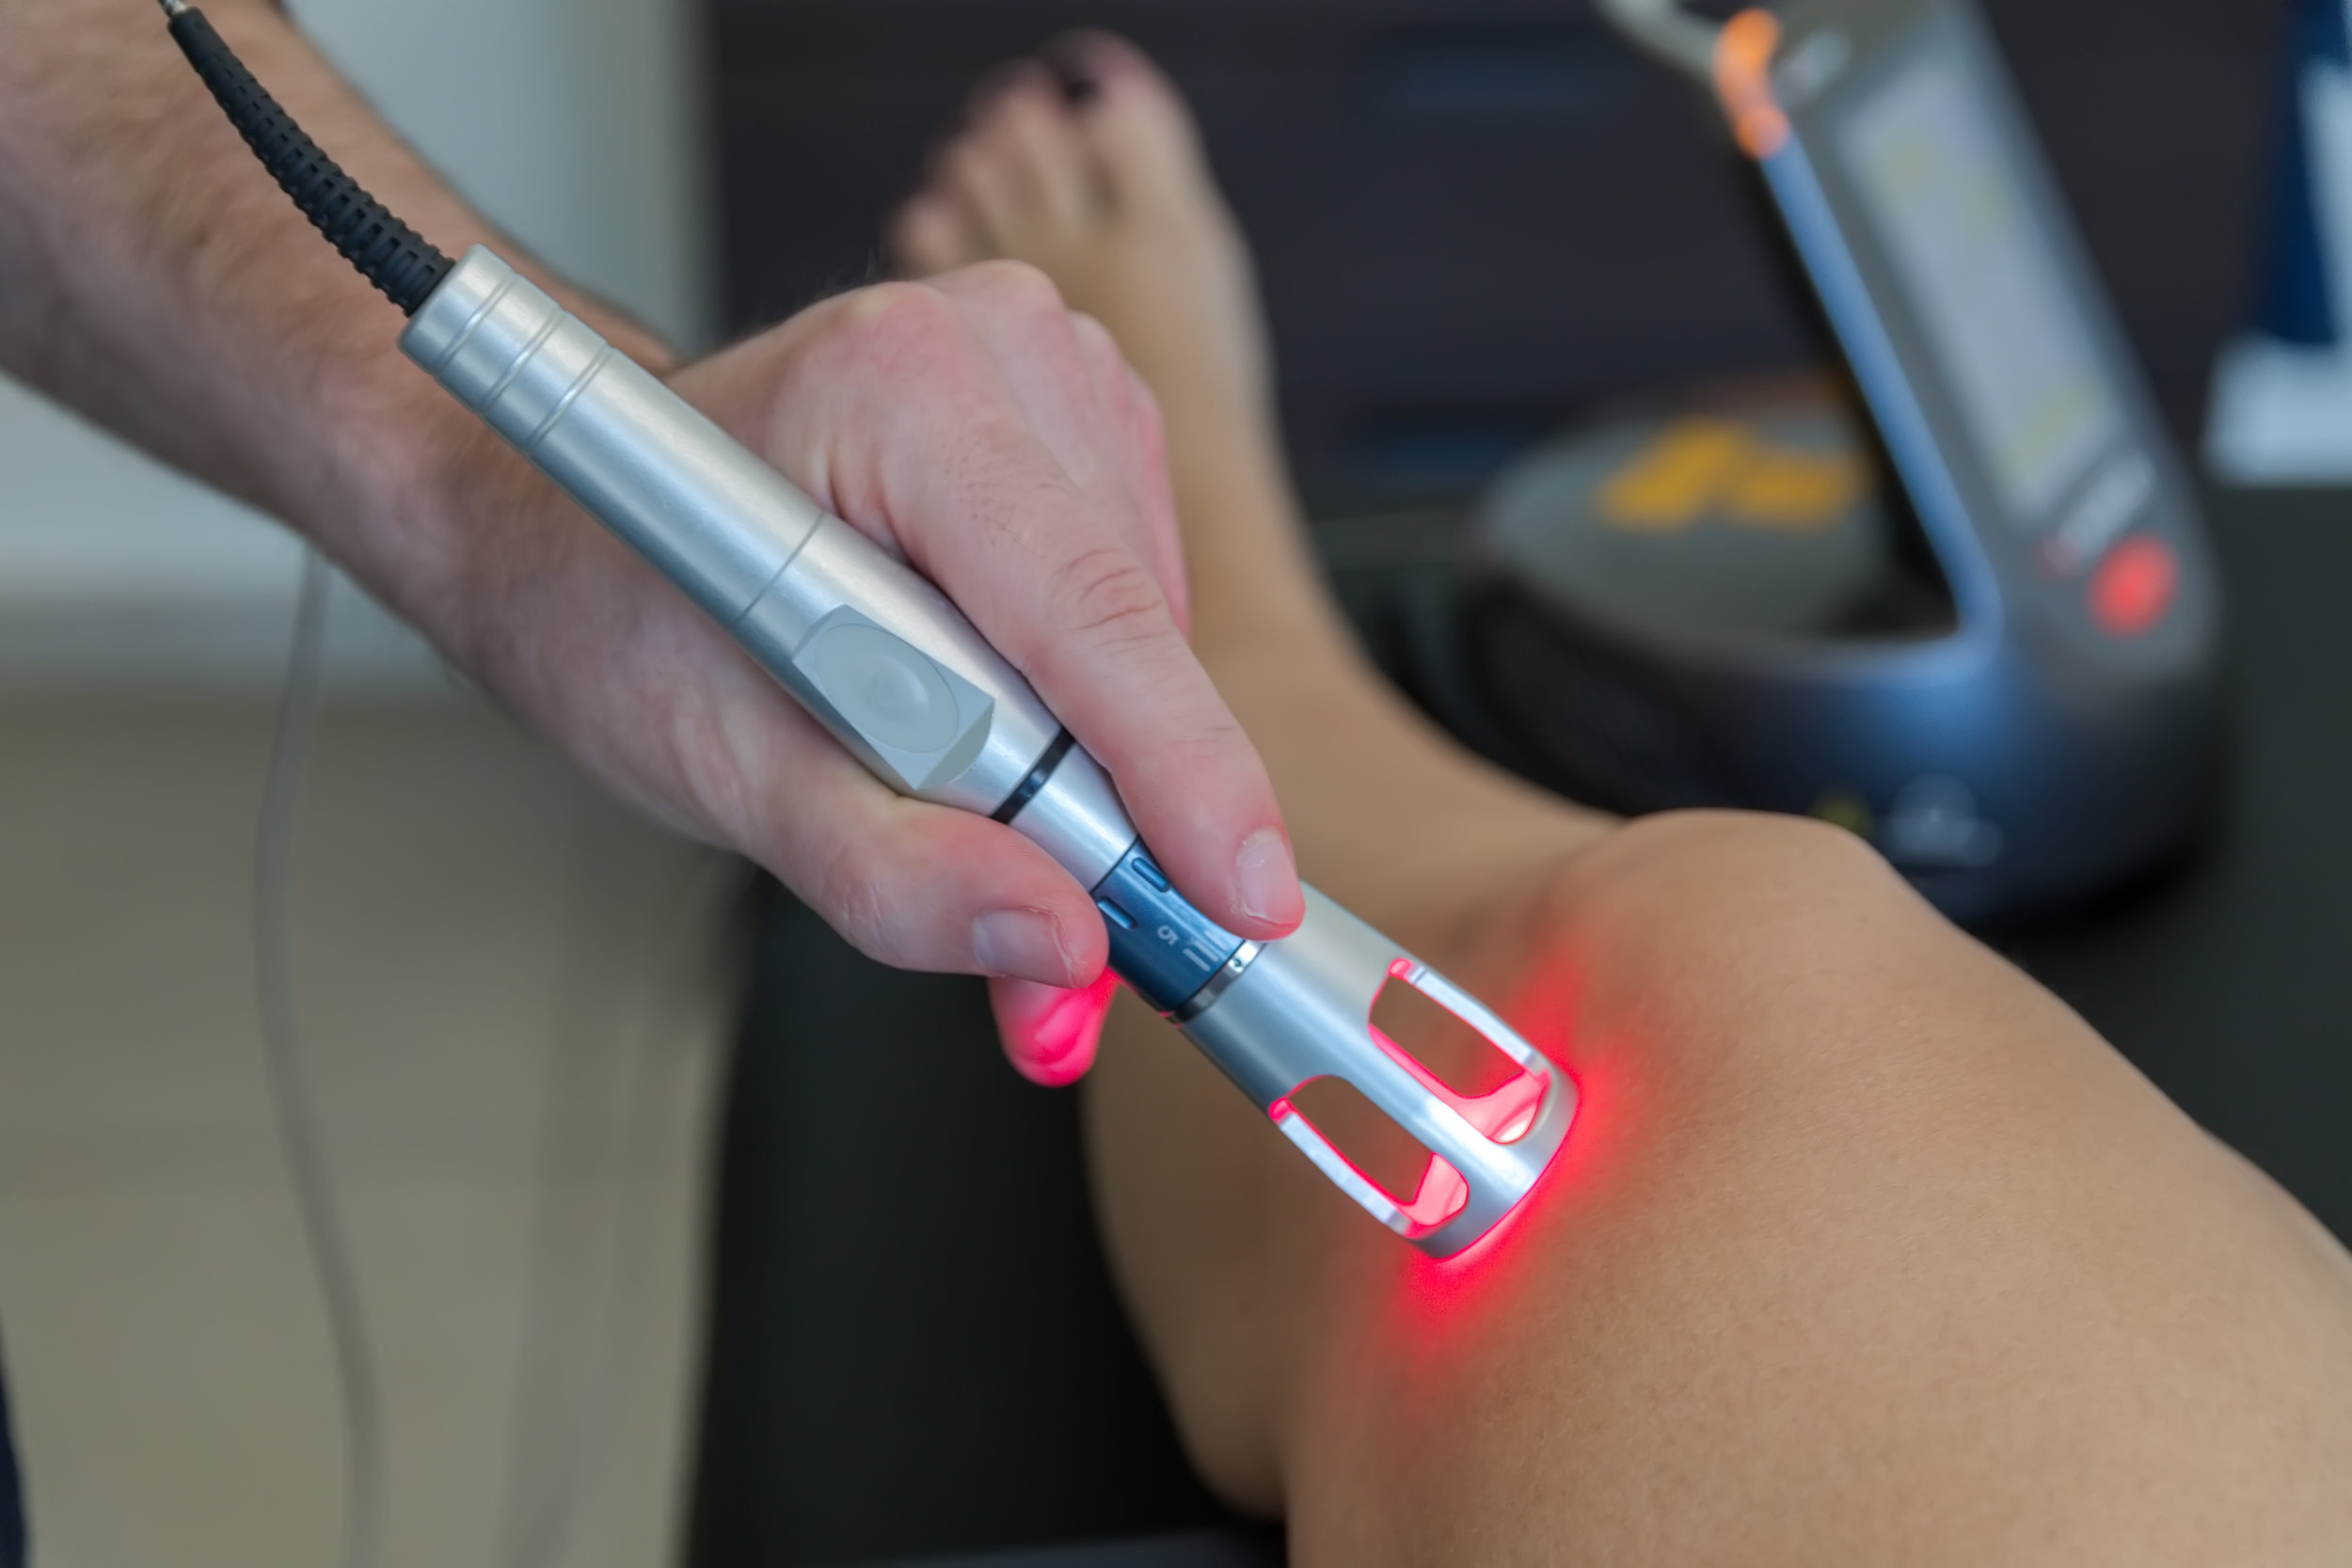 Class IV Laser Therapy - Using high energy light therapy, our Class IV Laser system decreases pain, decreases inflammation, increases healing factors and increases blood flow to the area.